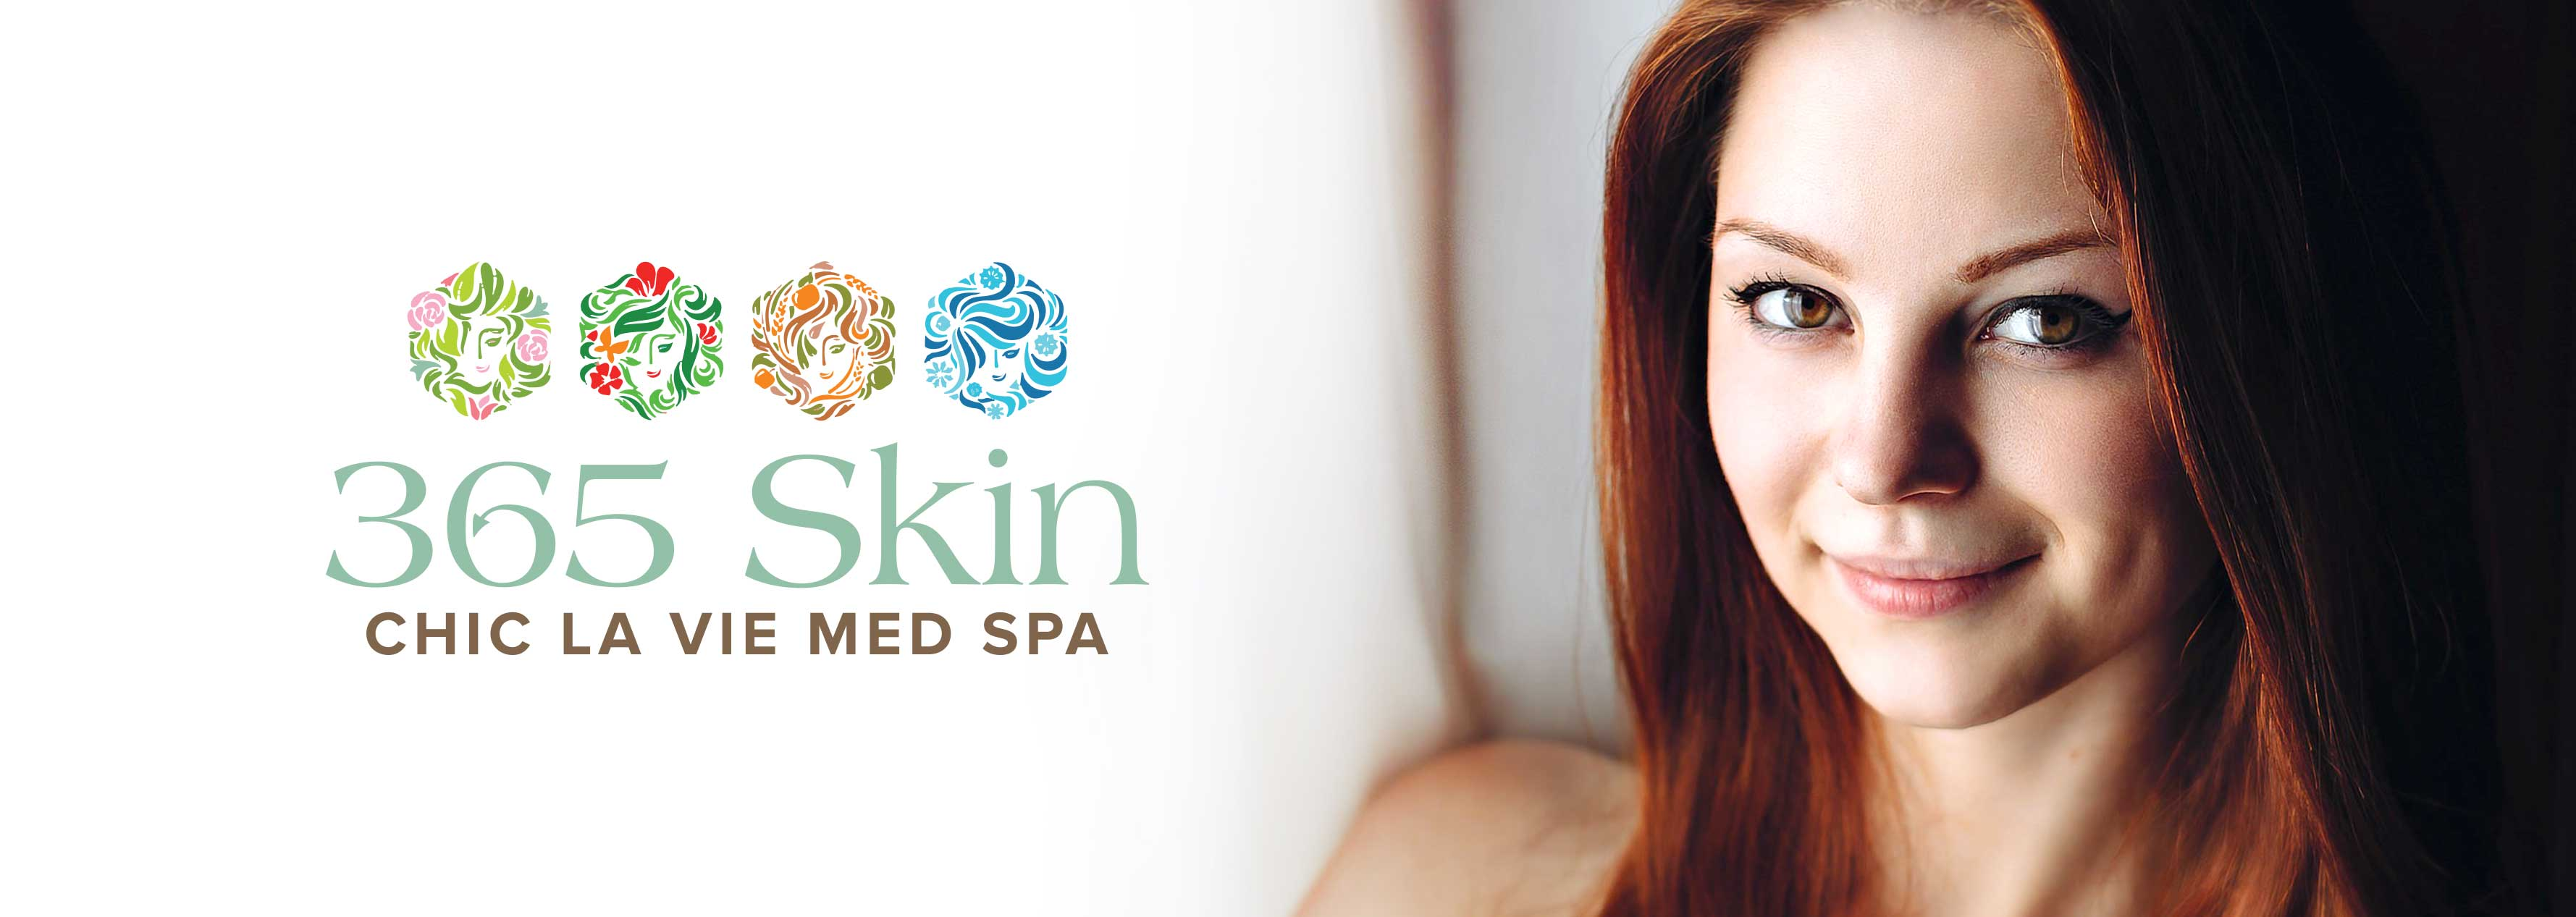 CLV 365 skin care membership vegas